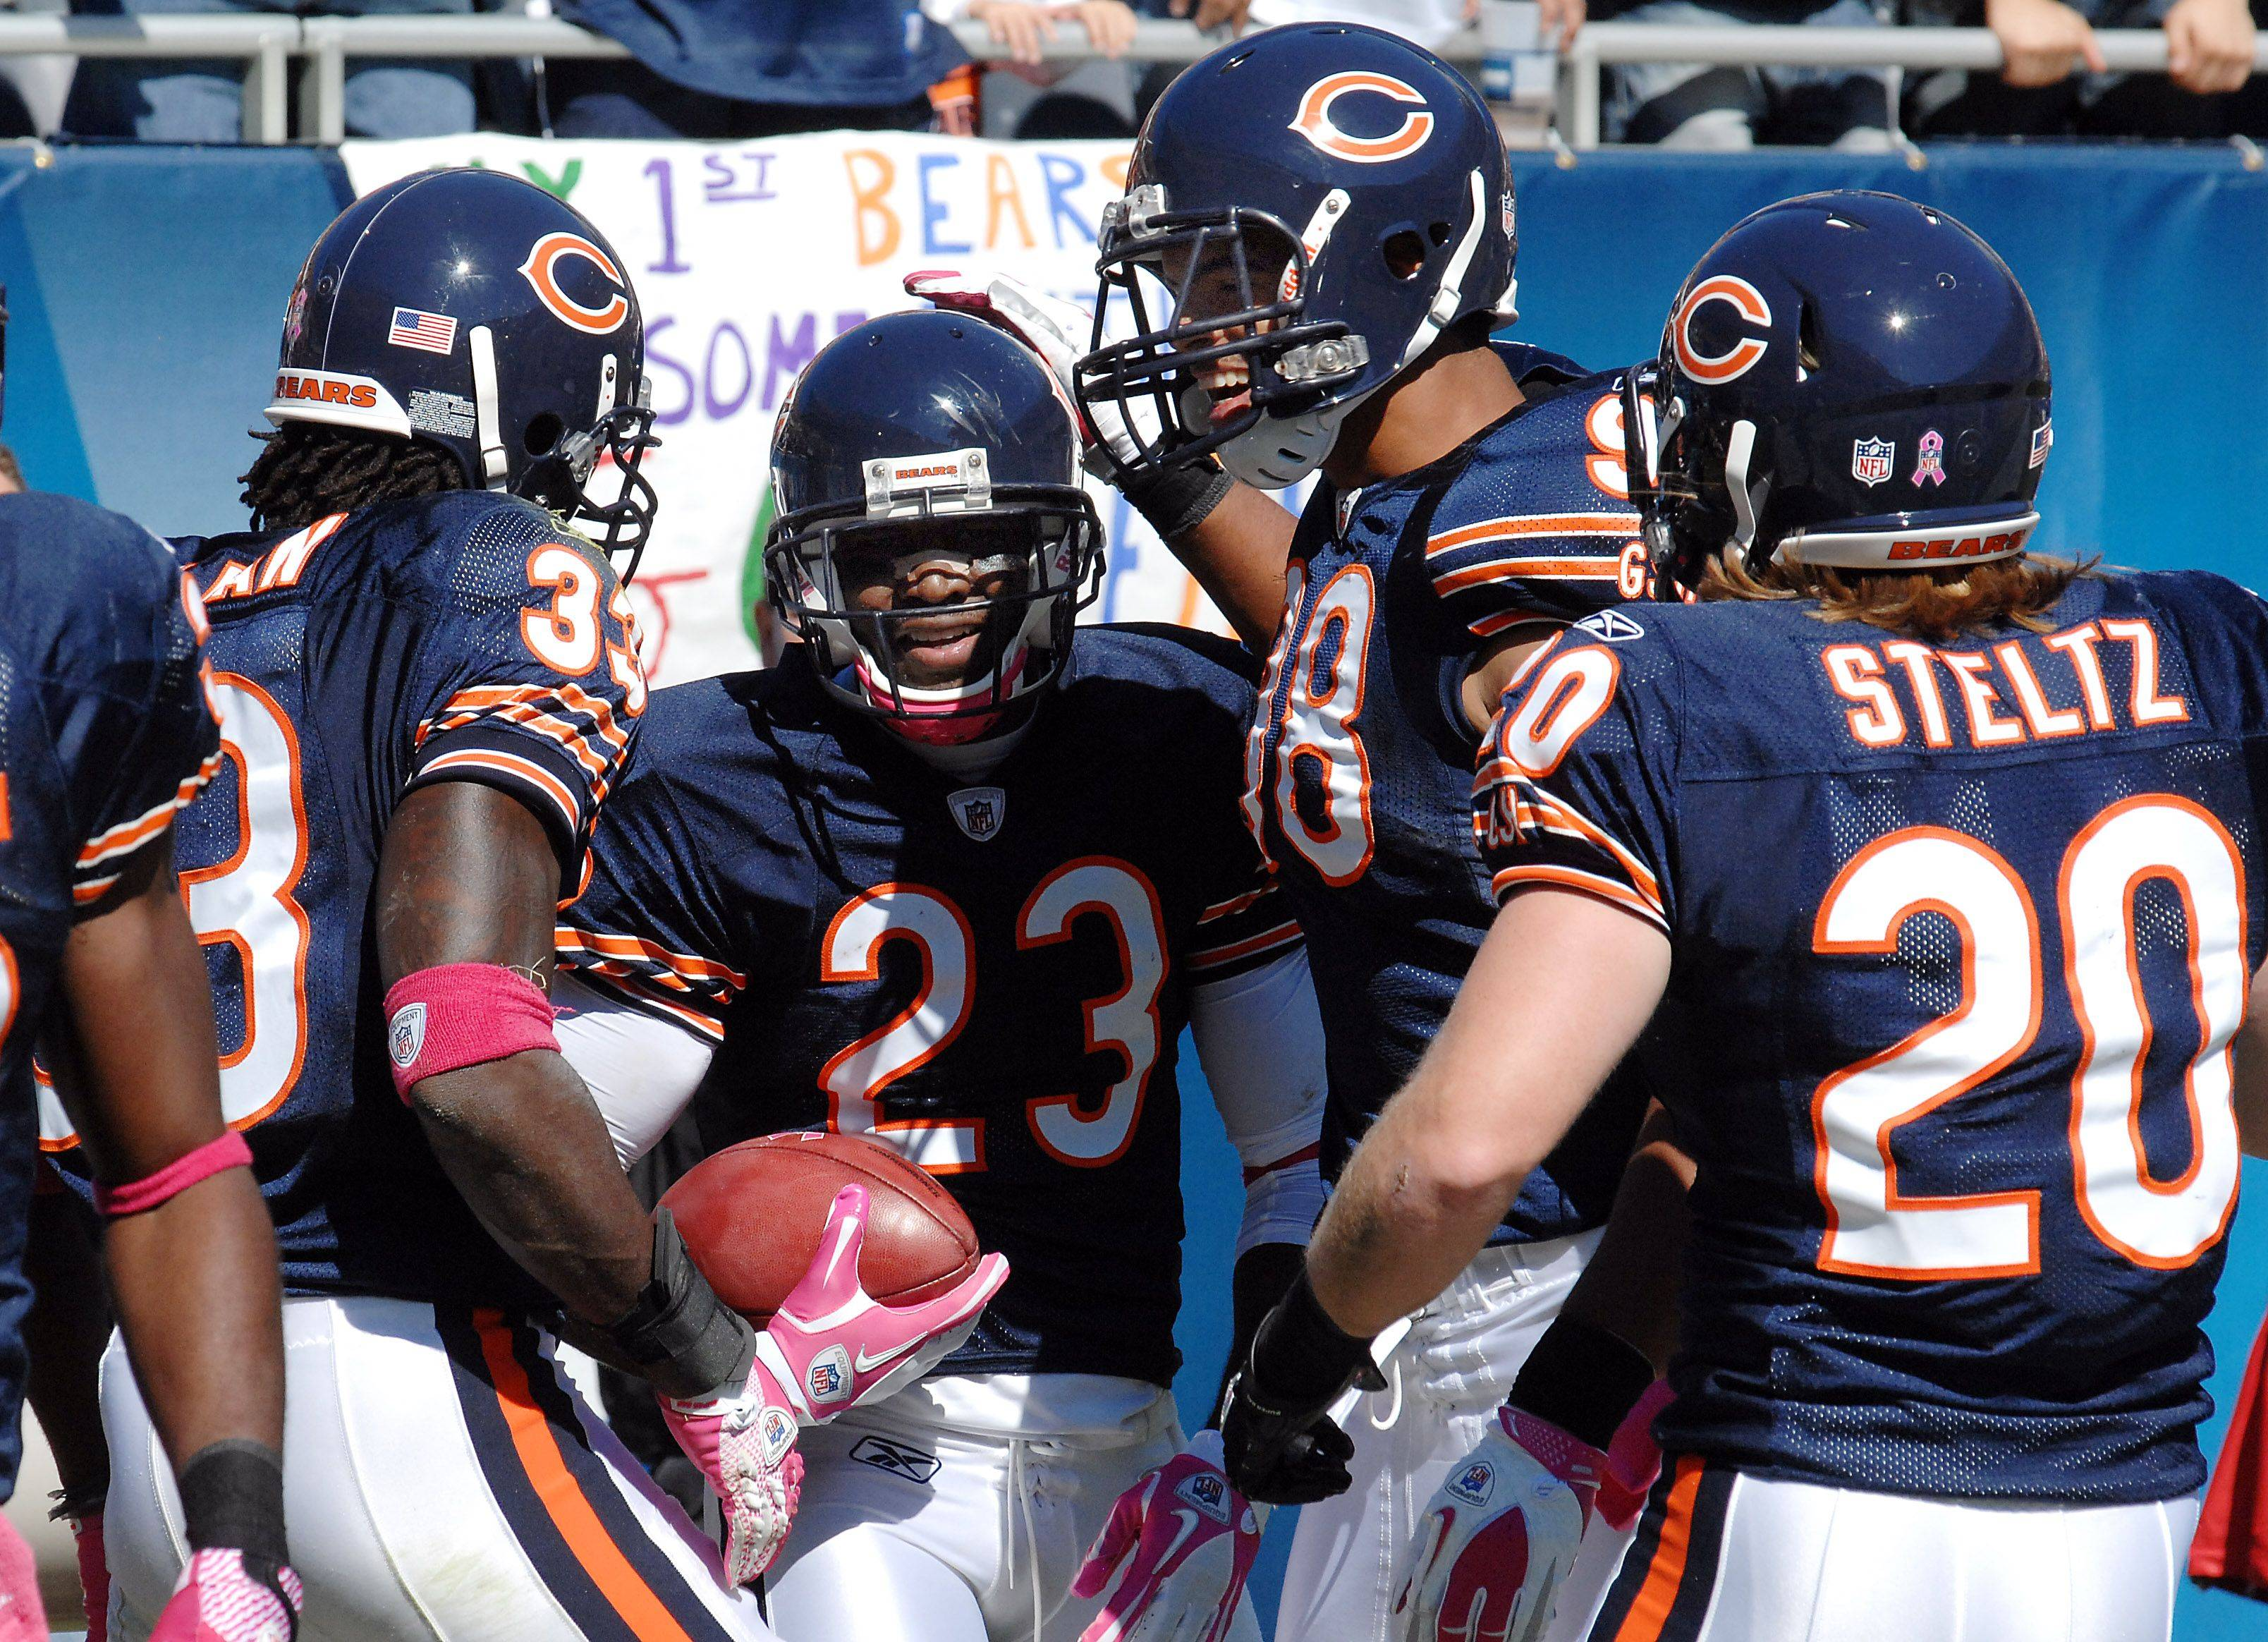 Bears Devin Hester runs back a second quarter punt return for a touchdown and an NFL record against the Panthers.